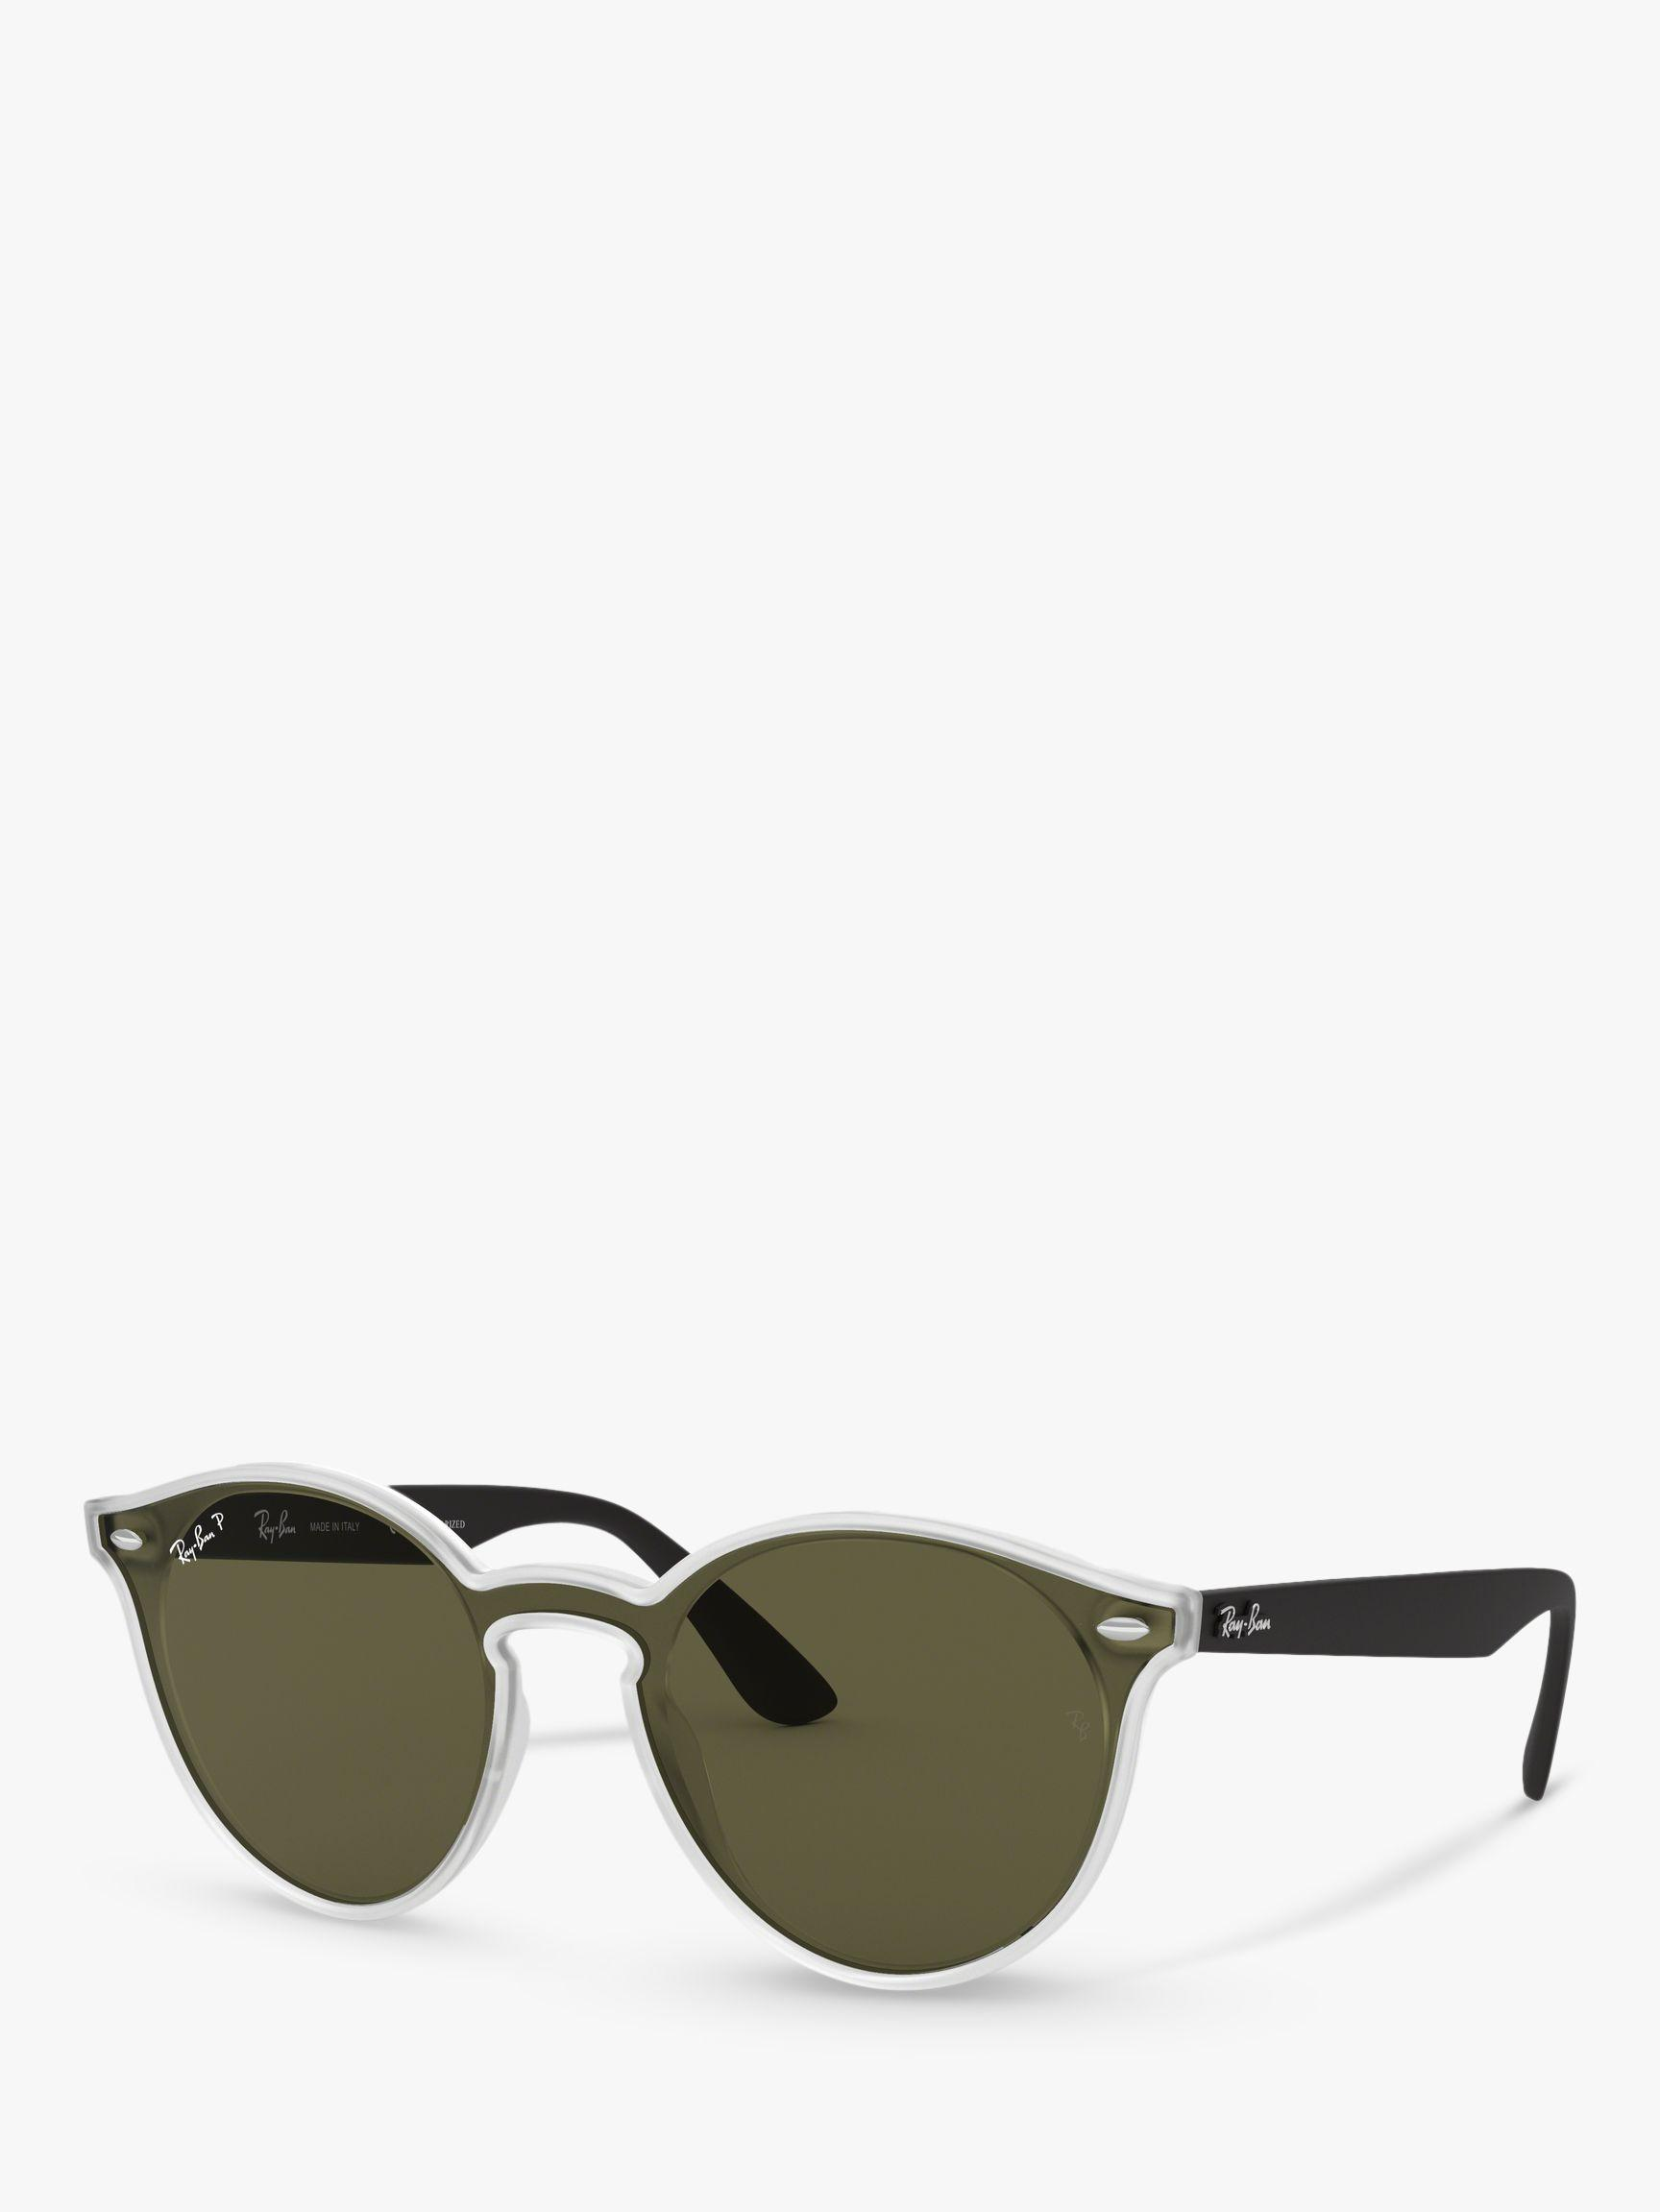 d95a1fc8990 Ray-Ban Rb4380n in Green - Lyst